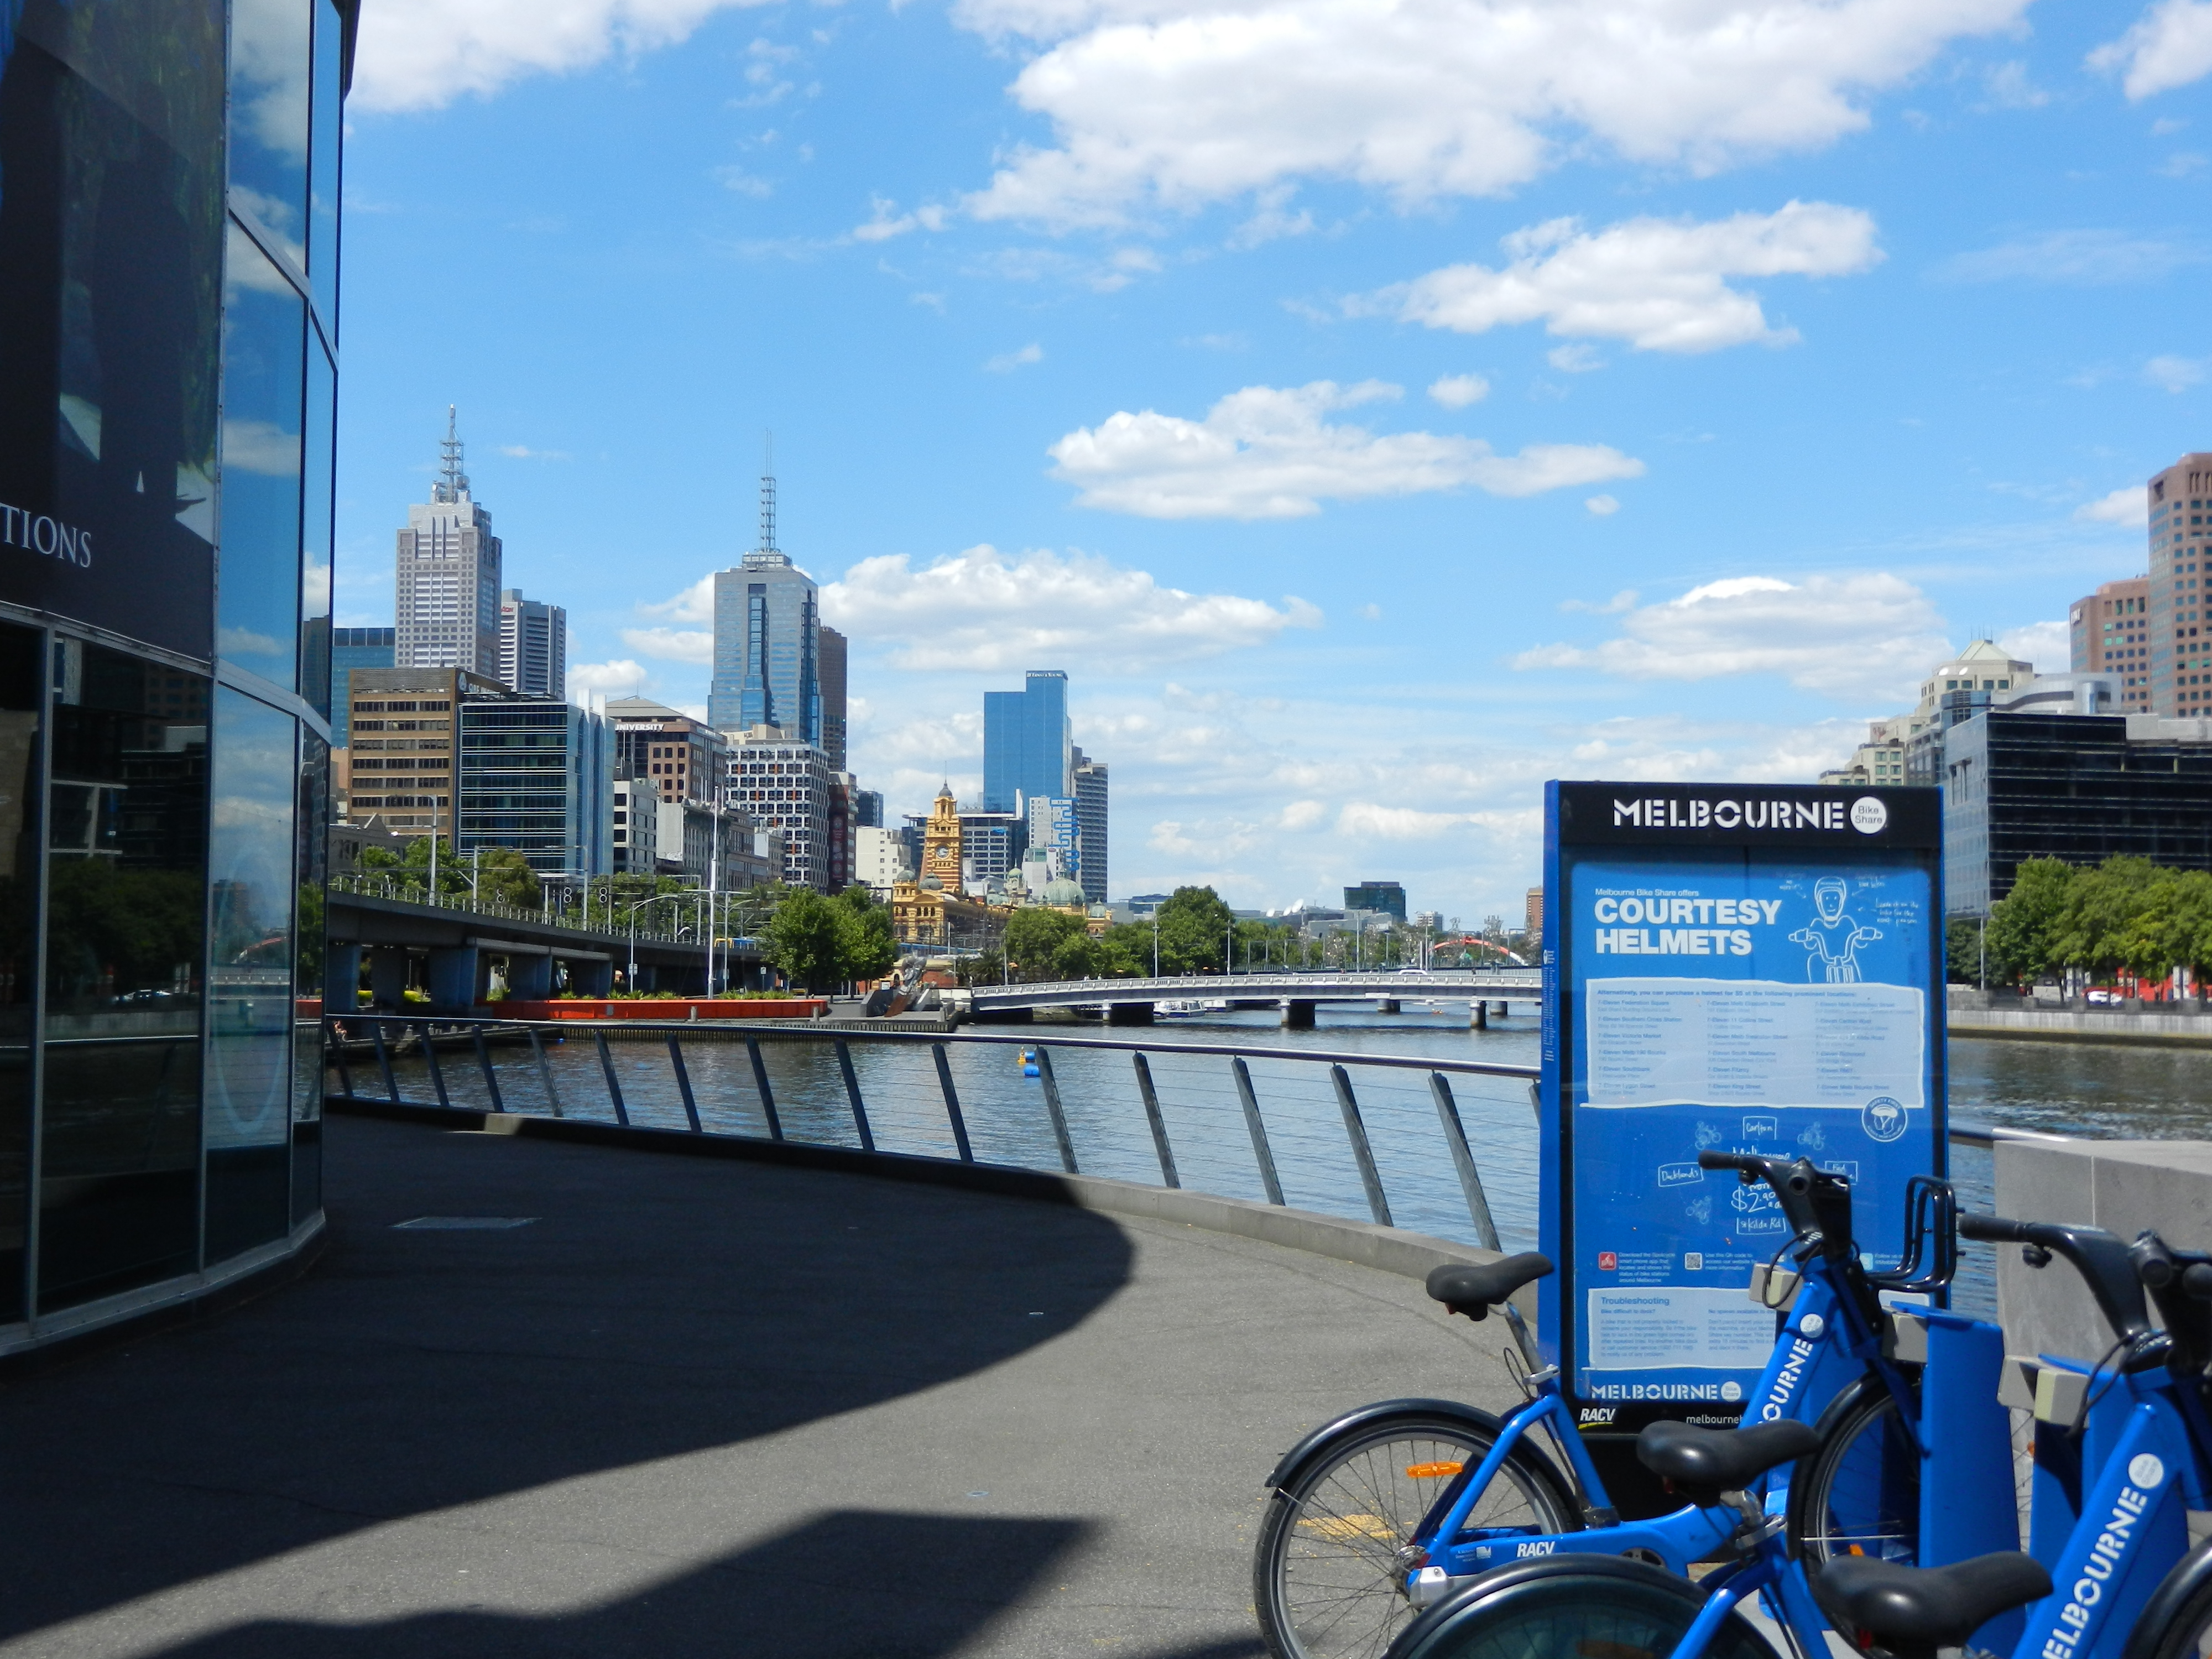 Blue bicycles in the foreground with a river and the Melbourne, Australia skyline in the background.